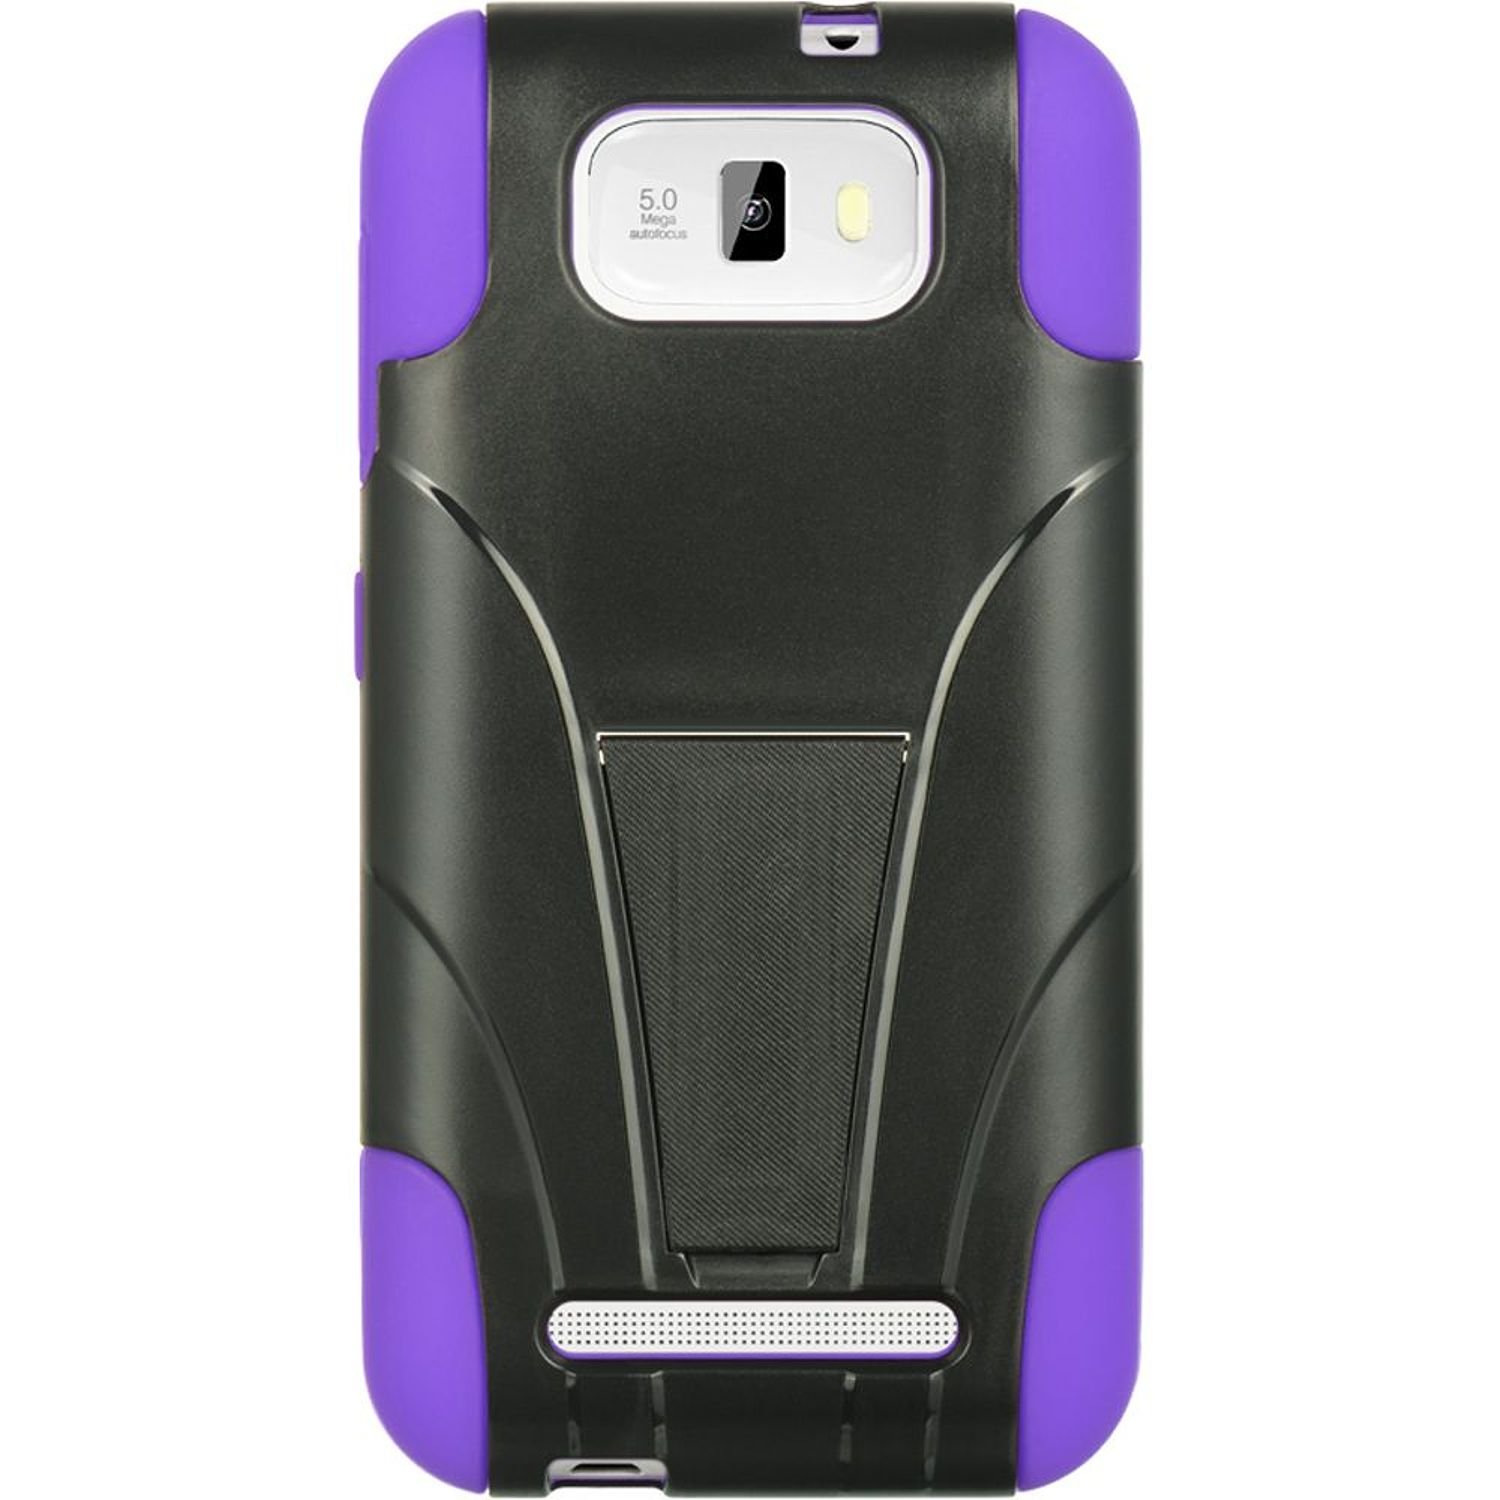 BLU Studio 5.5 Case, by DreamWireless Dual Layer Hybrid Stand Hard Plastic/Soft Silicone Case Cover For BLU Studio 5.5, Black/Purple